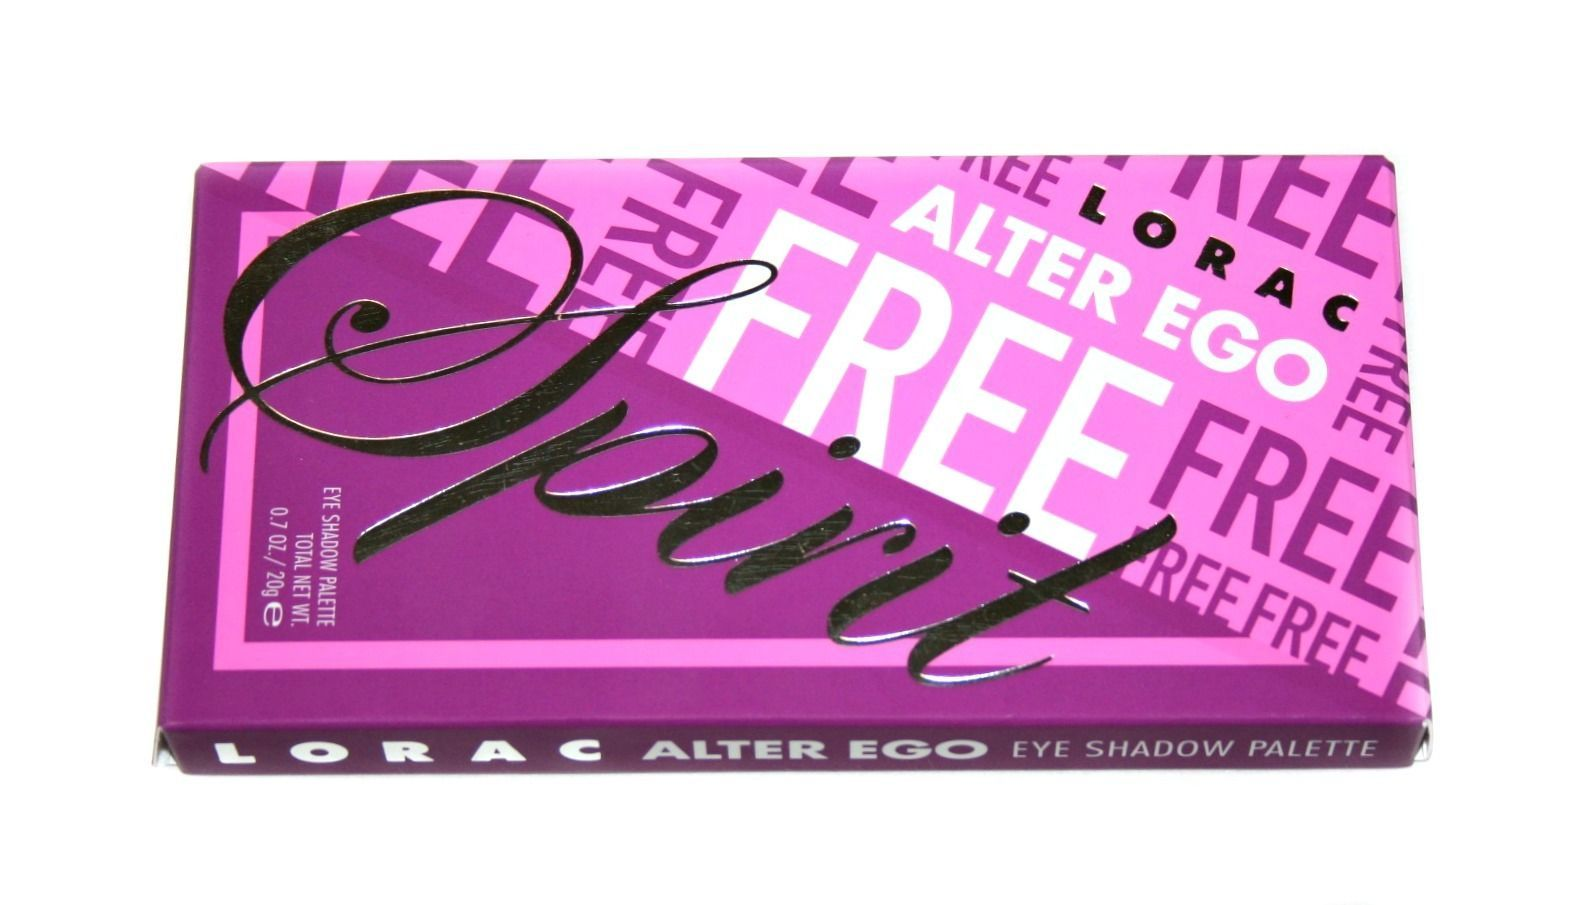 Lorac Alter Ego Eye Shadow Palette - Free and 32 similar items